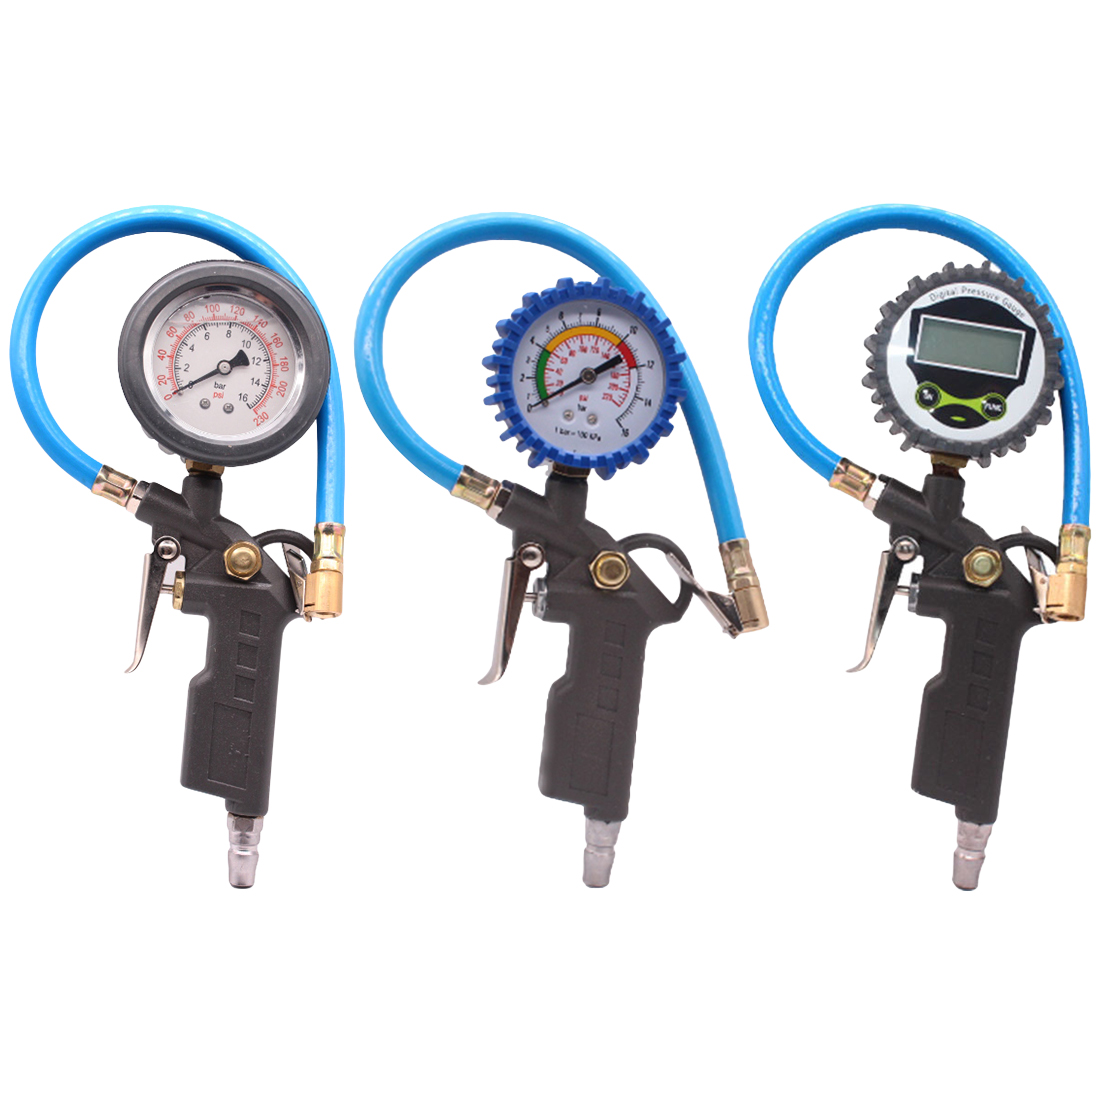 Digital Wheel Tyre Pressure Gauge Tyre Tire Air Pressure Inflator Gauge Meter Tester Manometer 0-220PSI 0-0.1/0.16/0.25Mpa